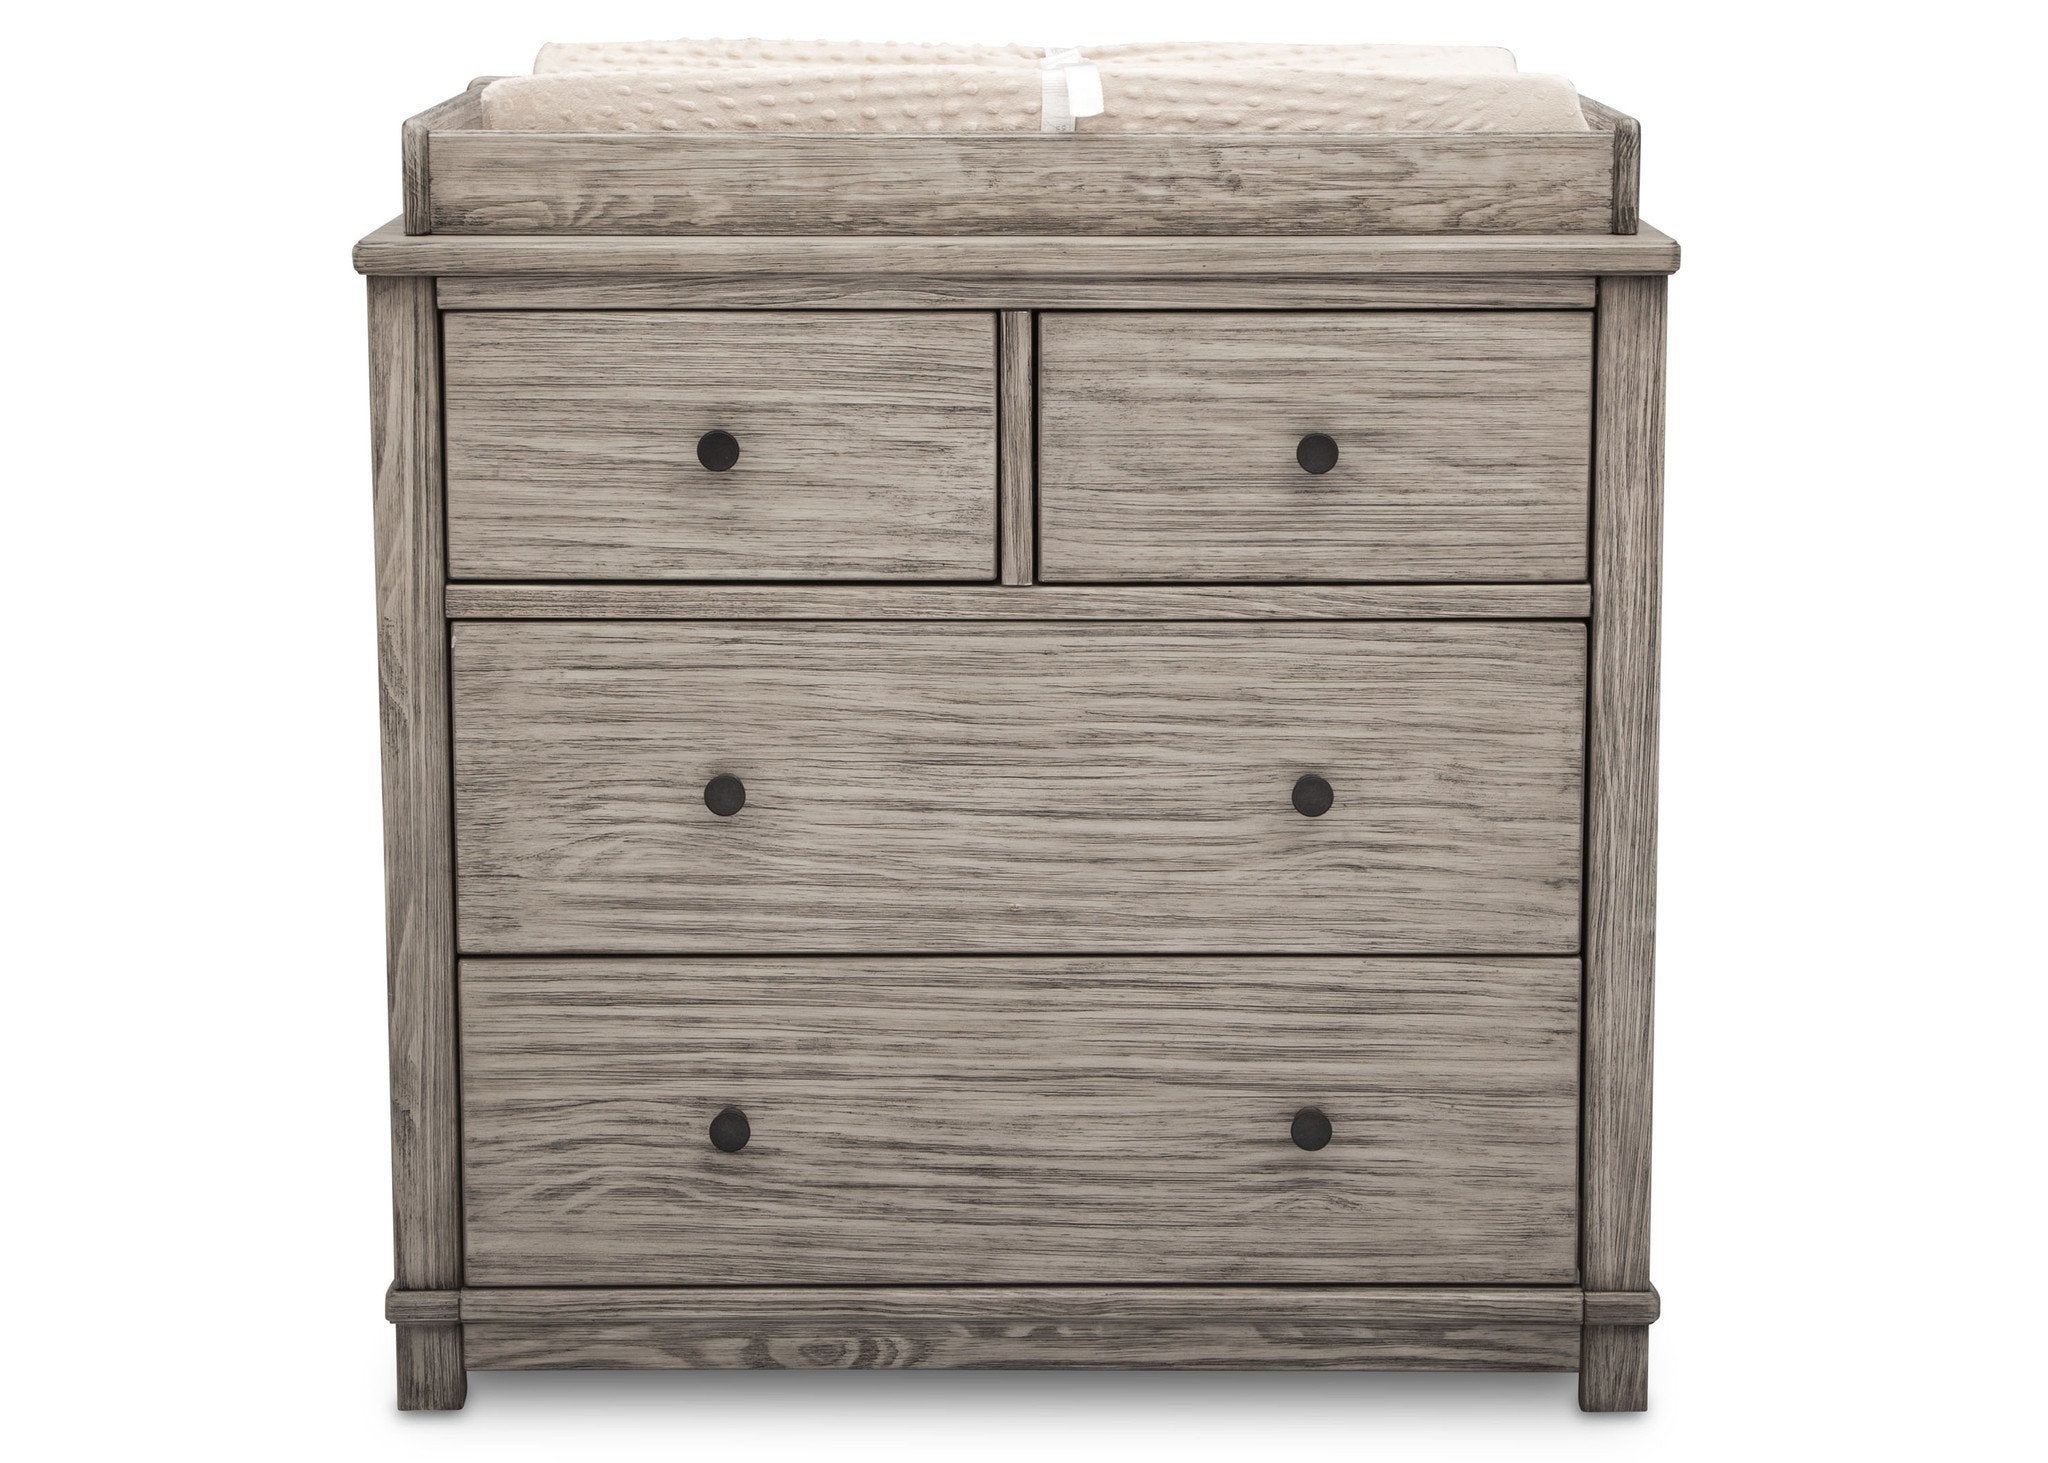 usa set white yhst dresser finish pcs dressers high gloss and in mirror extension athens stool athome